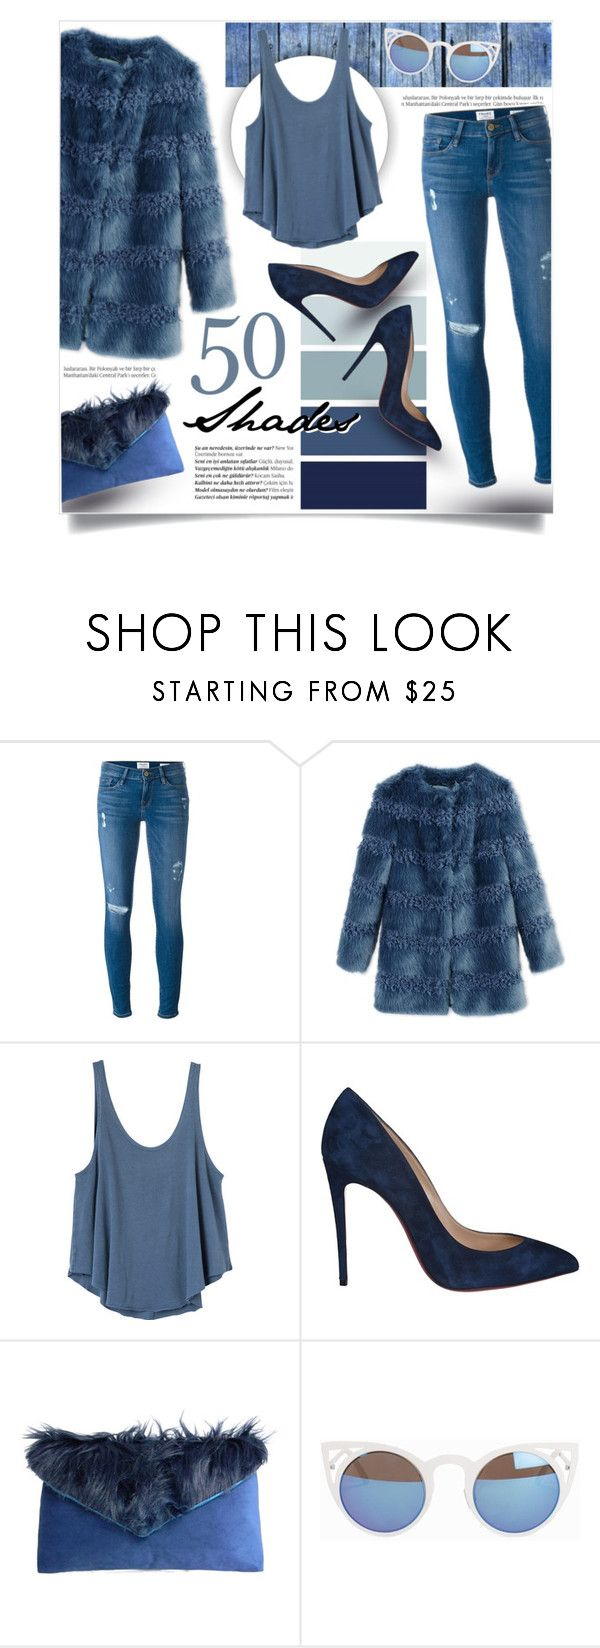 """50 Shades"" by tammara-d ❤ liked on Polyvore featuring Balmain, Frame Denim, Shrimps, RVCA, Christian Louboutin, Quay, Blue, ShadesofBlue, furcoat and onecoloroutfit"